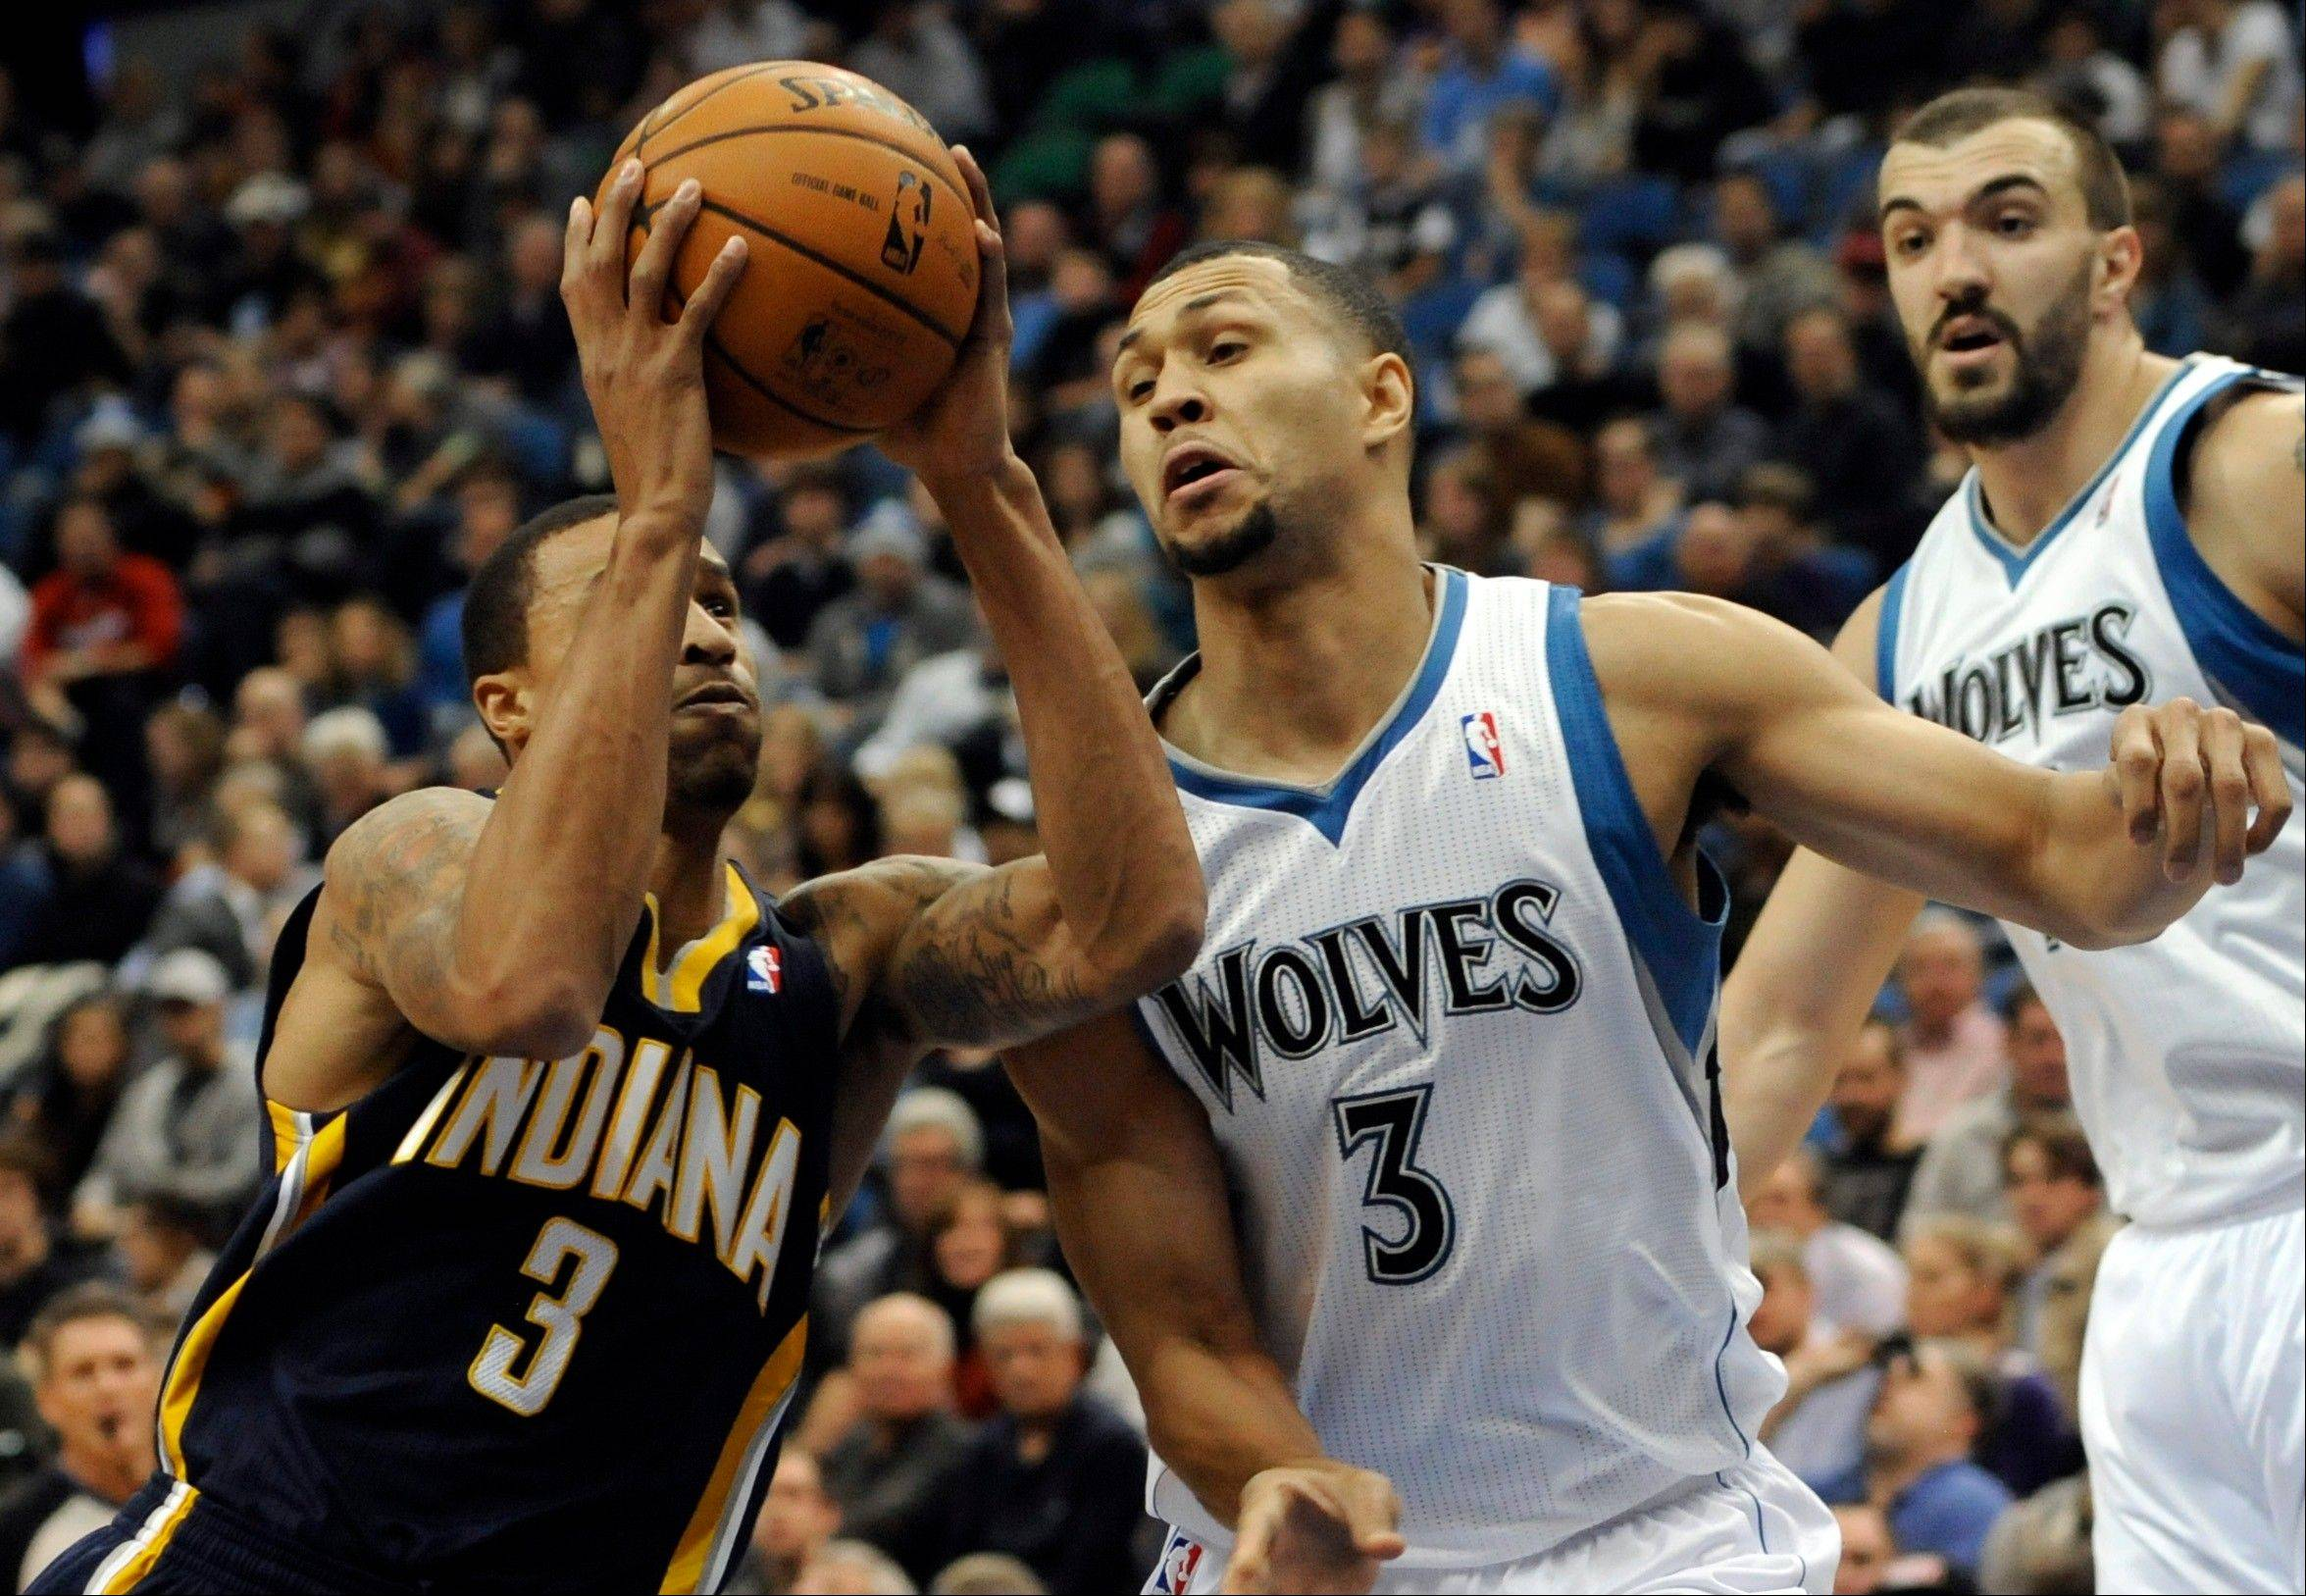 Indiana Pacers' George Hill drives as Minnesota Timberwolves' Brandon Roy, right, defends during the first half of an NBA basketball game Friday, Nov. 9, 2012, in Minneapolis. Hill led all scorers with 29 points. The Timberwolves won 96-94. (AP Photo/Jim Mone)